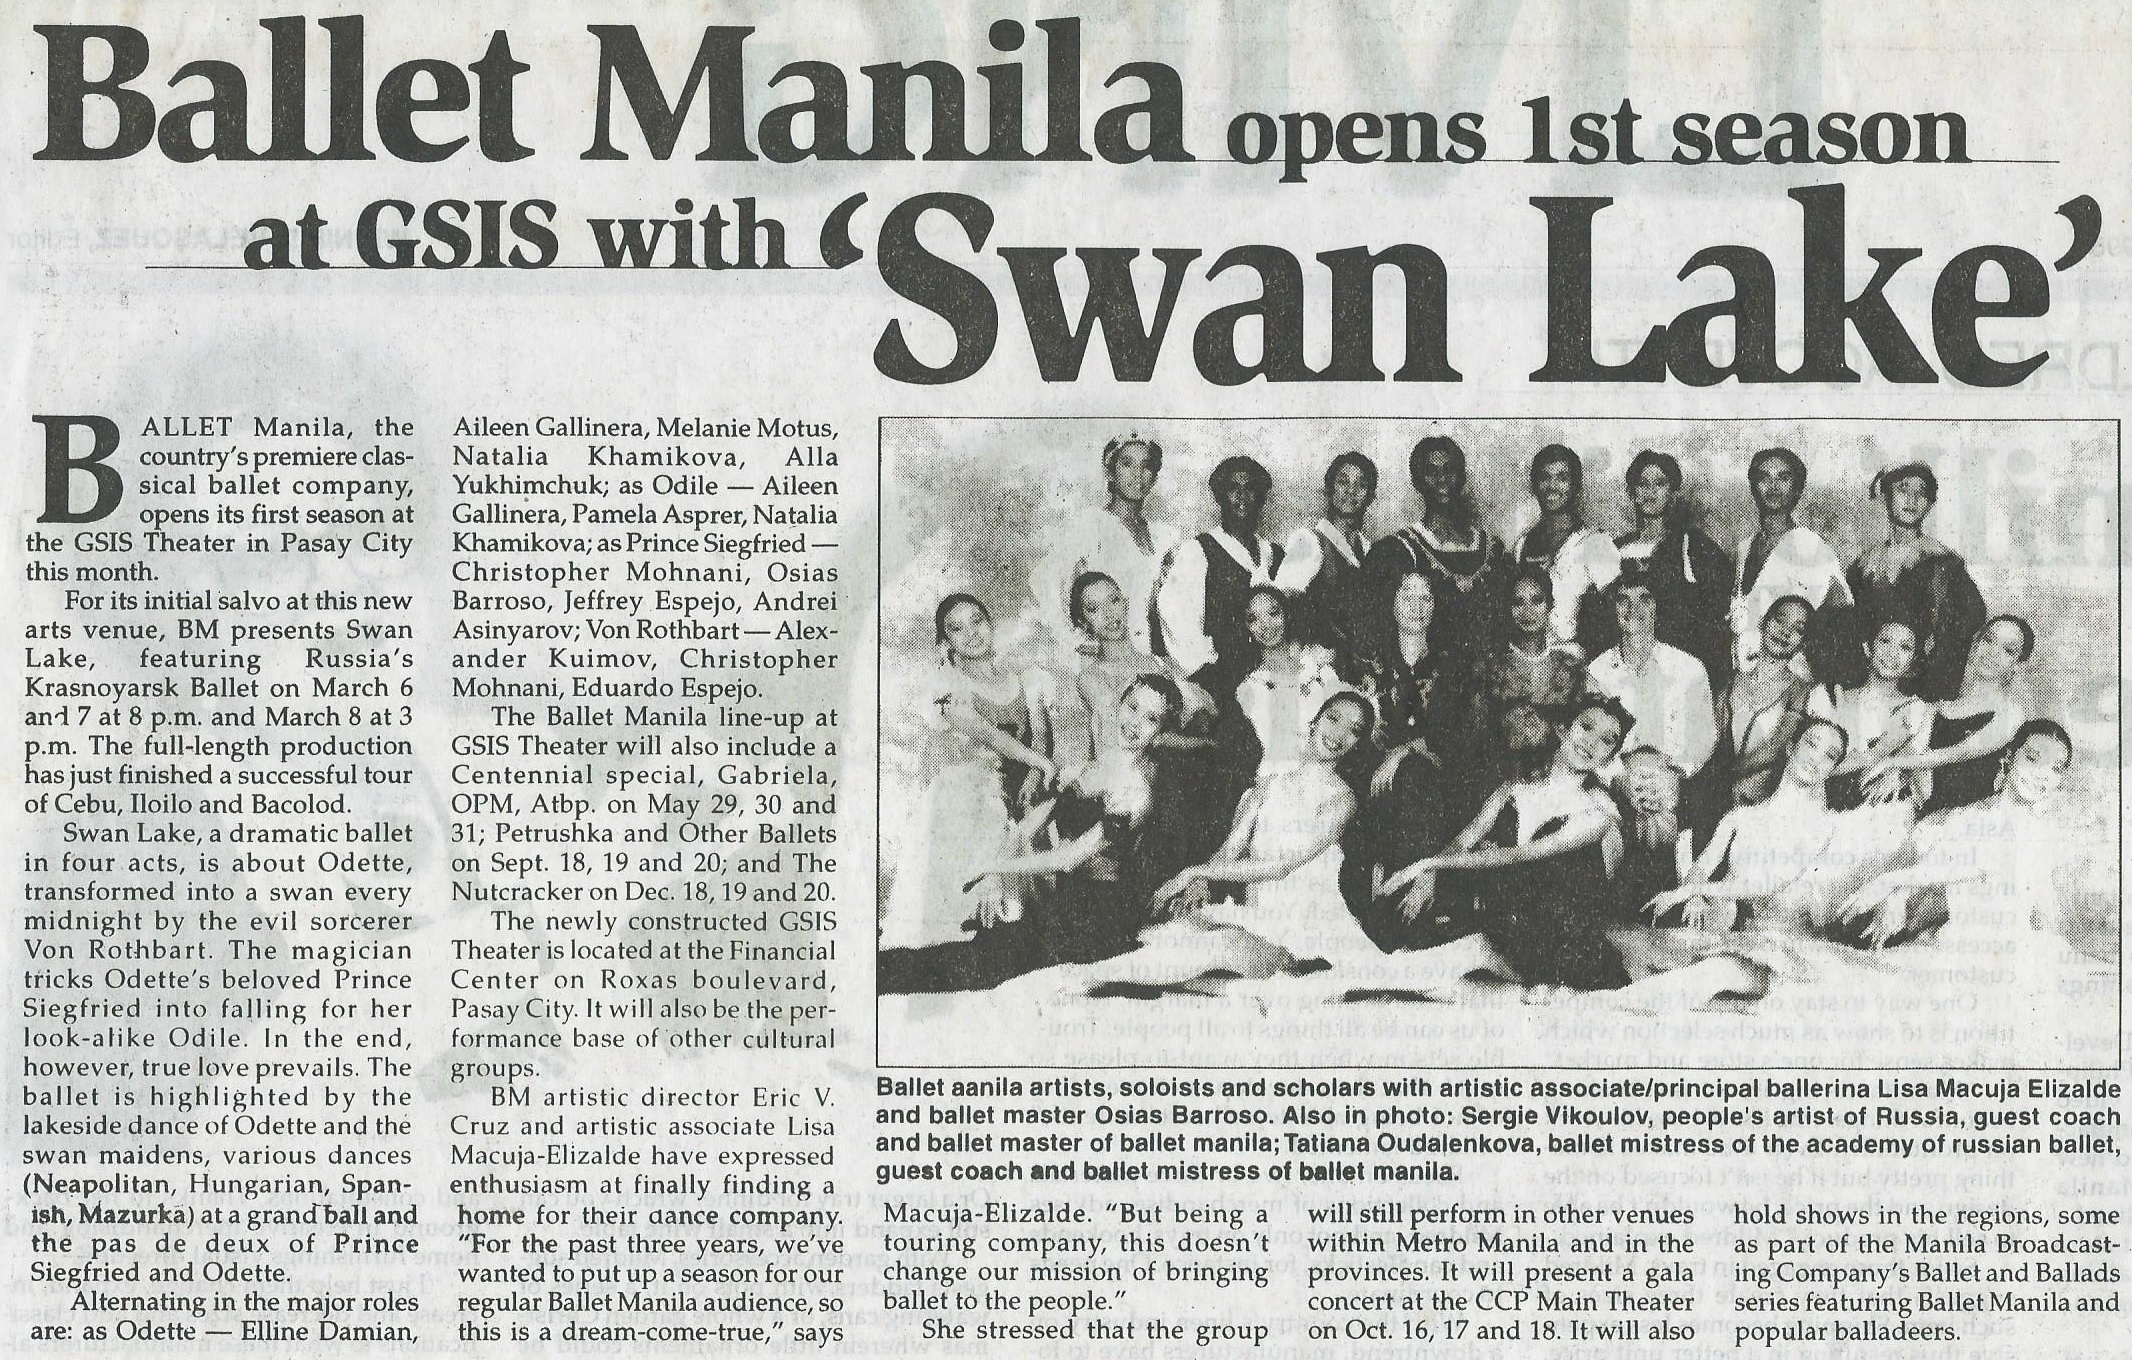 Ballet Manila premiered S wan Lake  to kick off its first season at GSIS Theater, as indicated in this newspaper announcement. From the Ballet Manila Archives collection